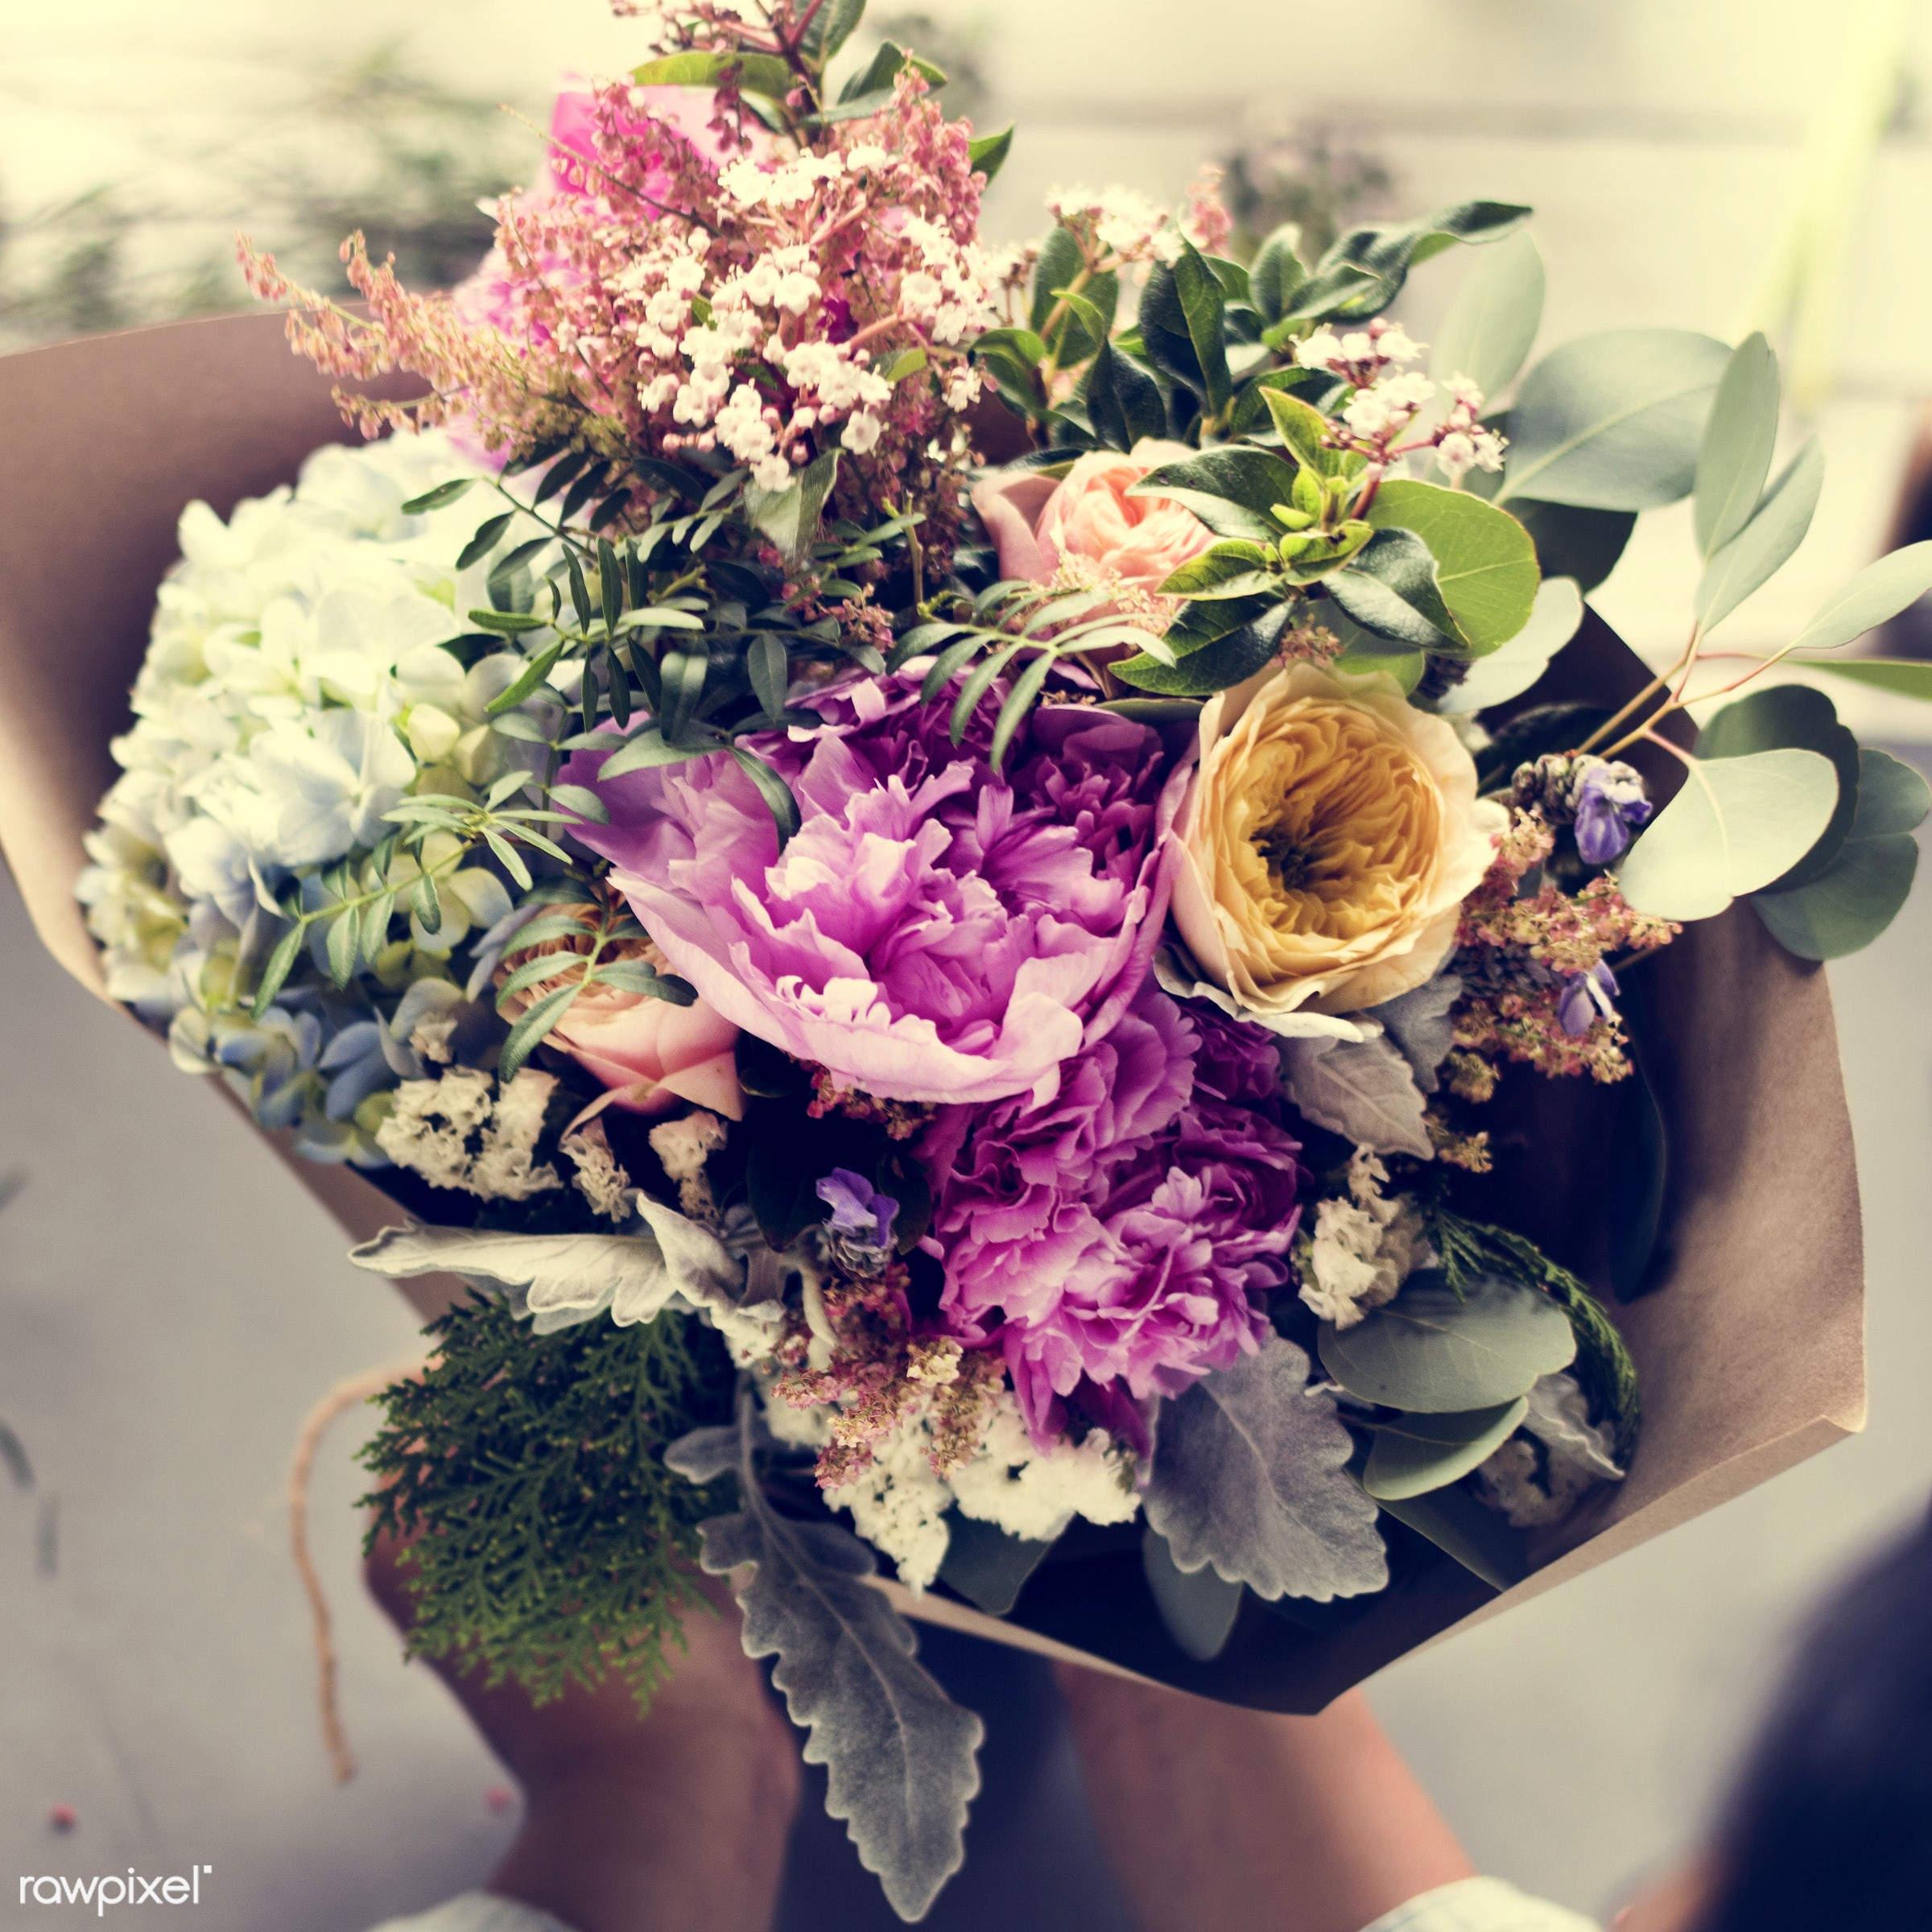 plant, bouquet, person, wrapped, holding, paper, people, blossom, hands, fresh, aerial view, flower, decoration, flora,...